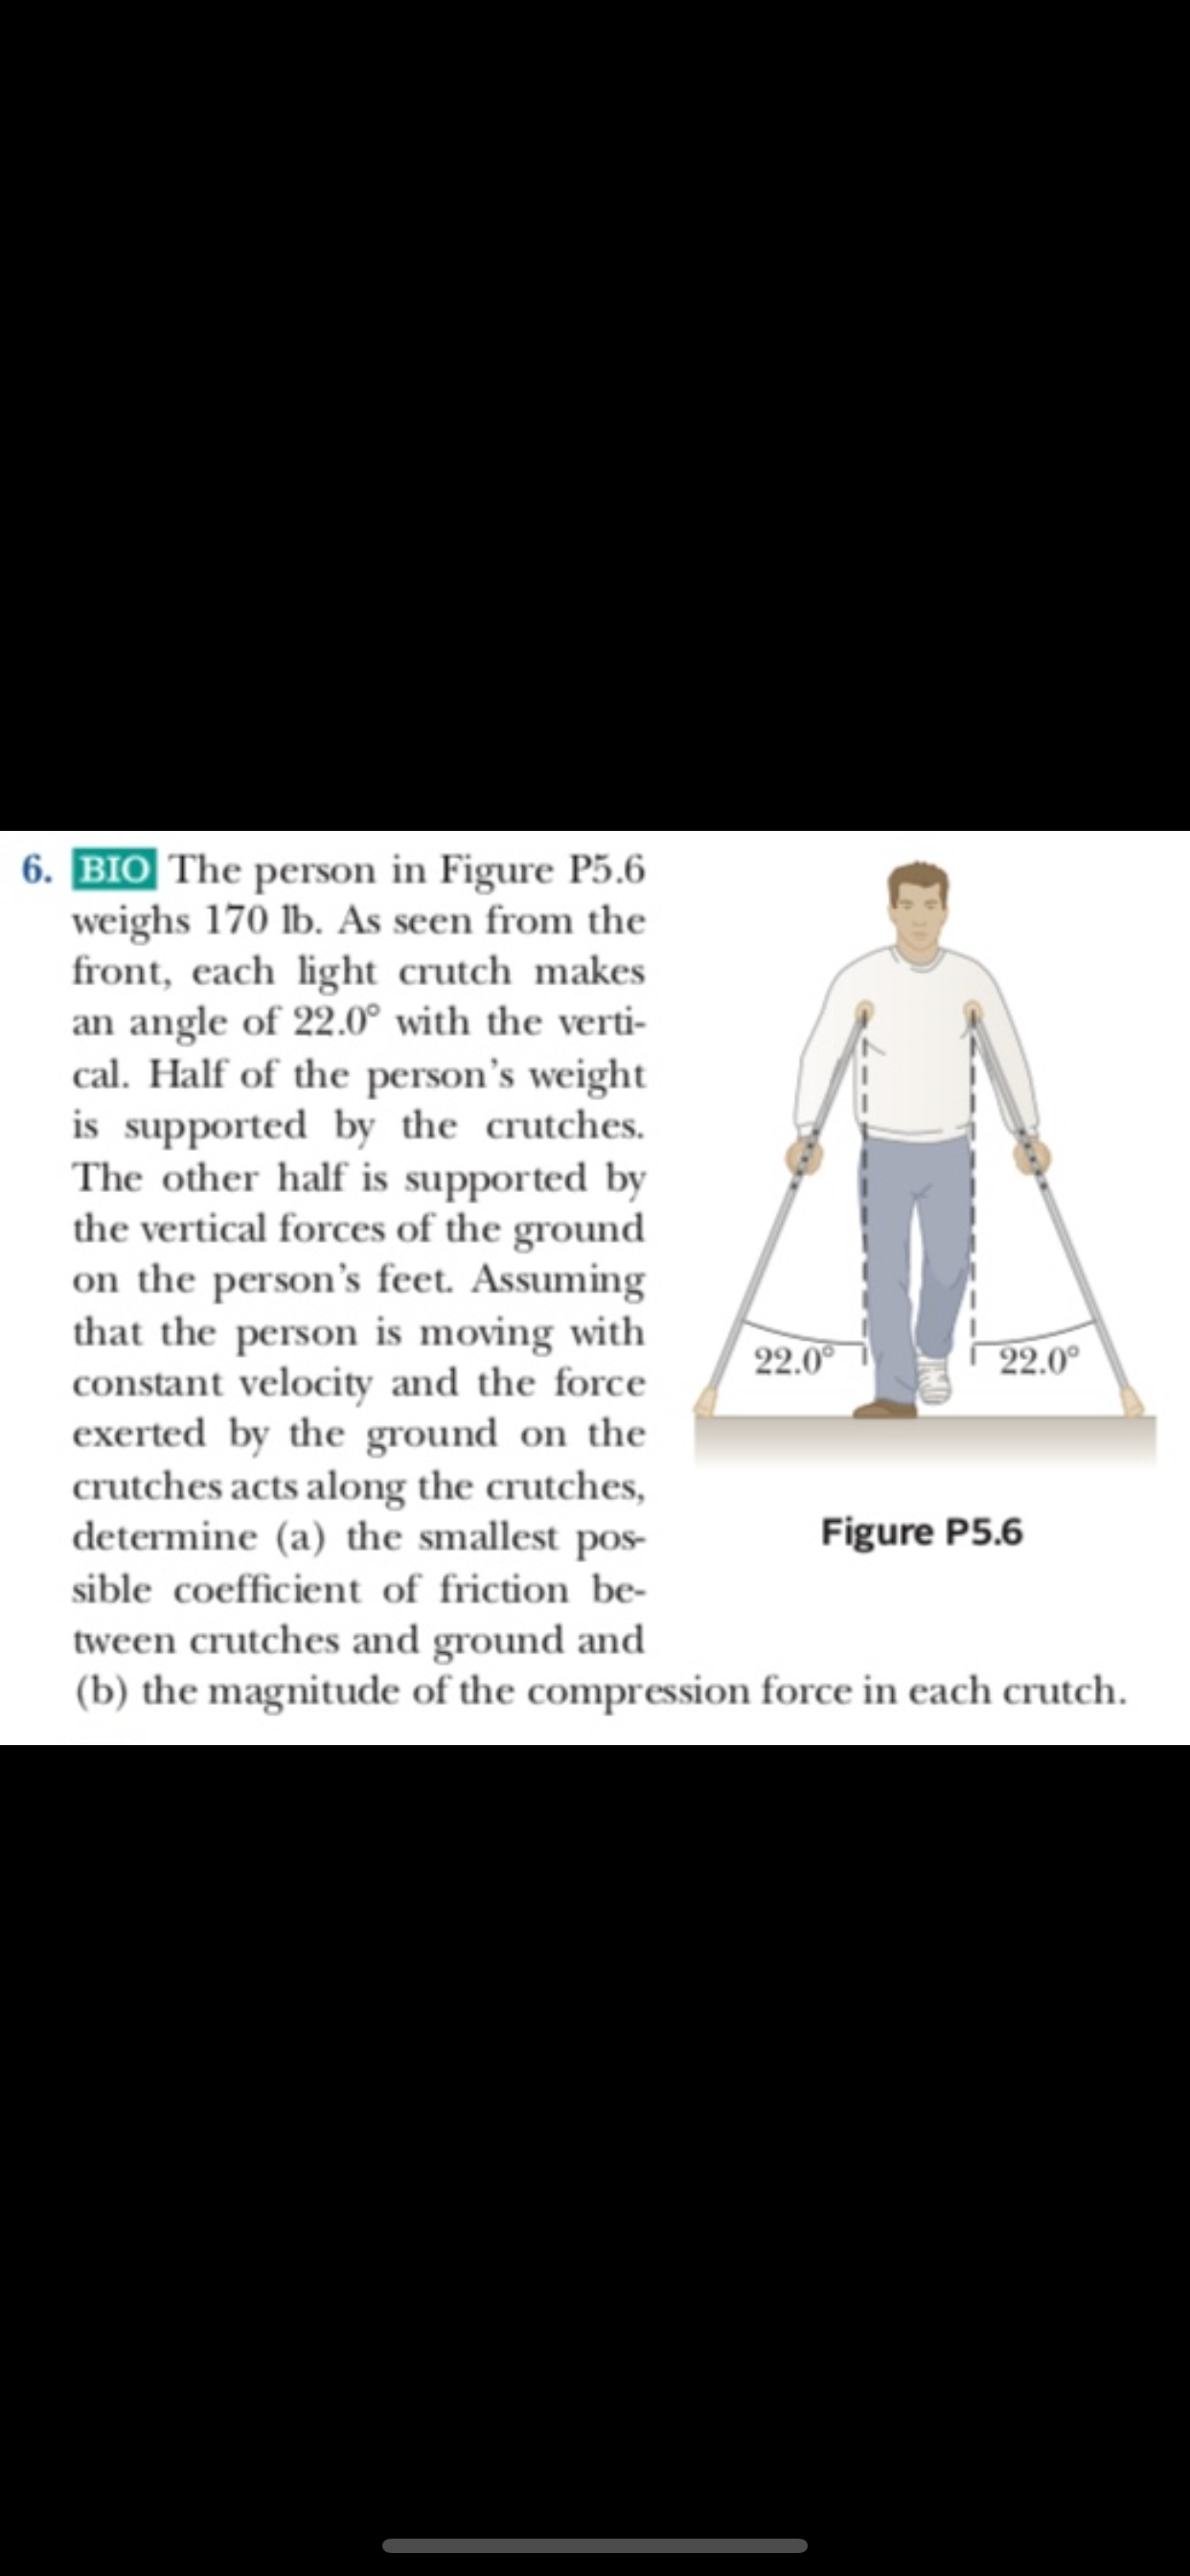 6.BIO The person in Figure P5.6 weighs 170 lb. As seen from the front, each light crutch makes an angle of 22.0° with the verti cal. Half of the person's weight is supported by the crutches The other half is supported by the vertical forces of the ground on the person's feet. Assuming that the person is moving with constant velocity and the force exerted by the ground on the crutches acts along the crutches, determine (a) the smallest pos 22.0 22.0 Figure P5.6 sible coefficient of friction be- tween crutches and ground and (b) the magnitude of the compression force in each crutch